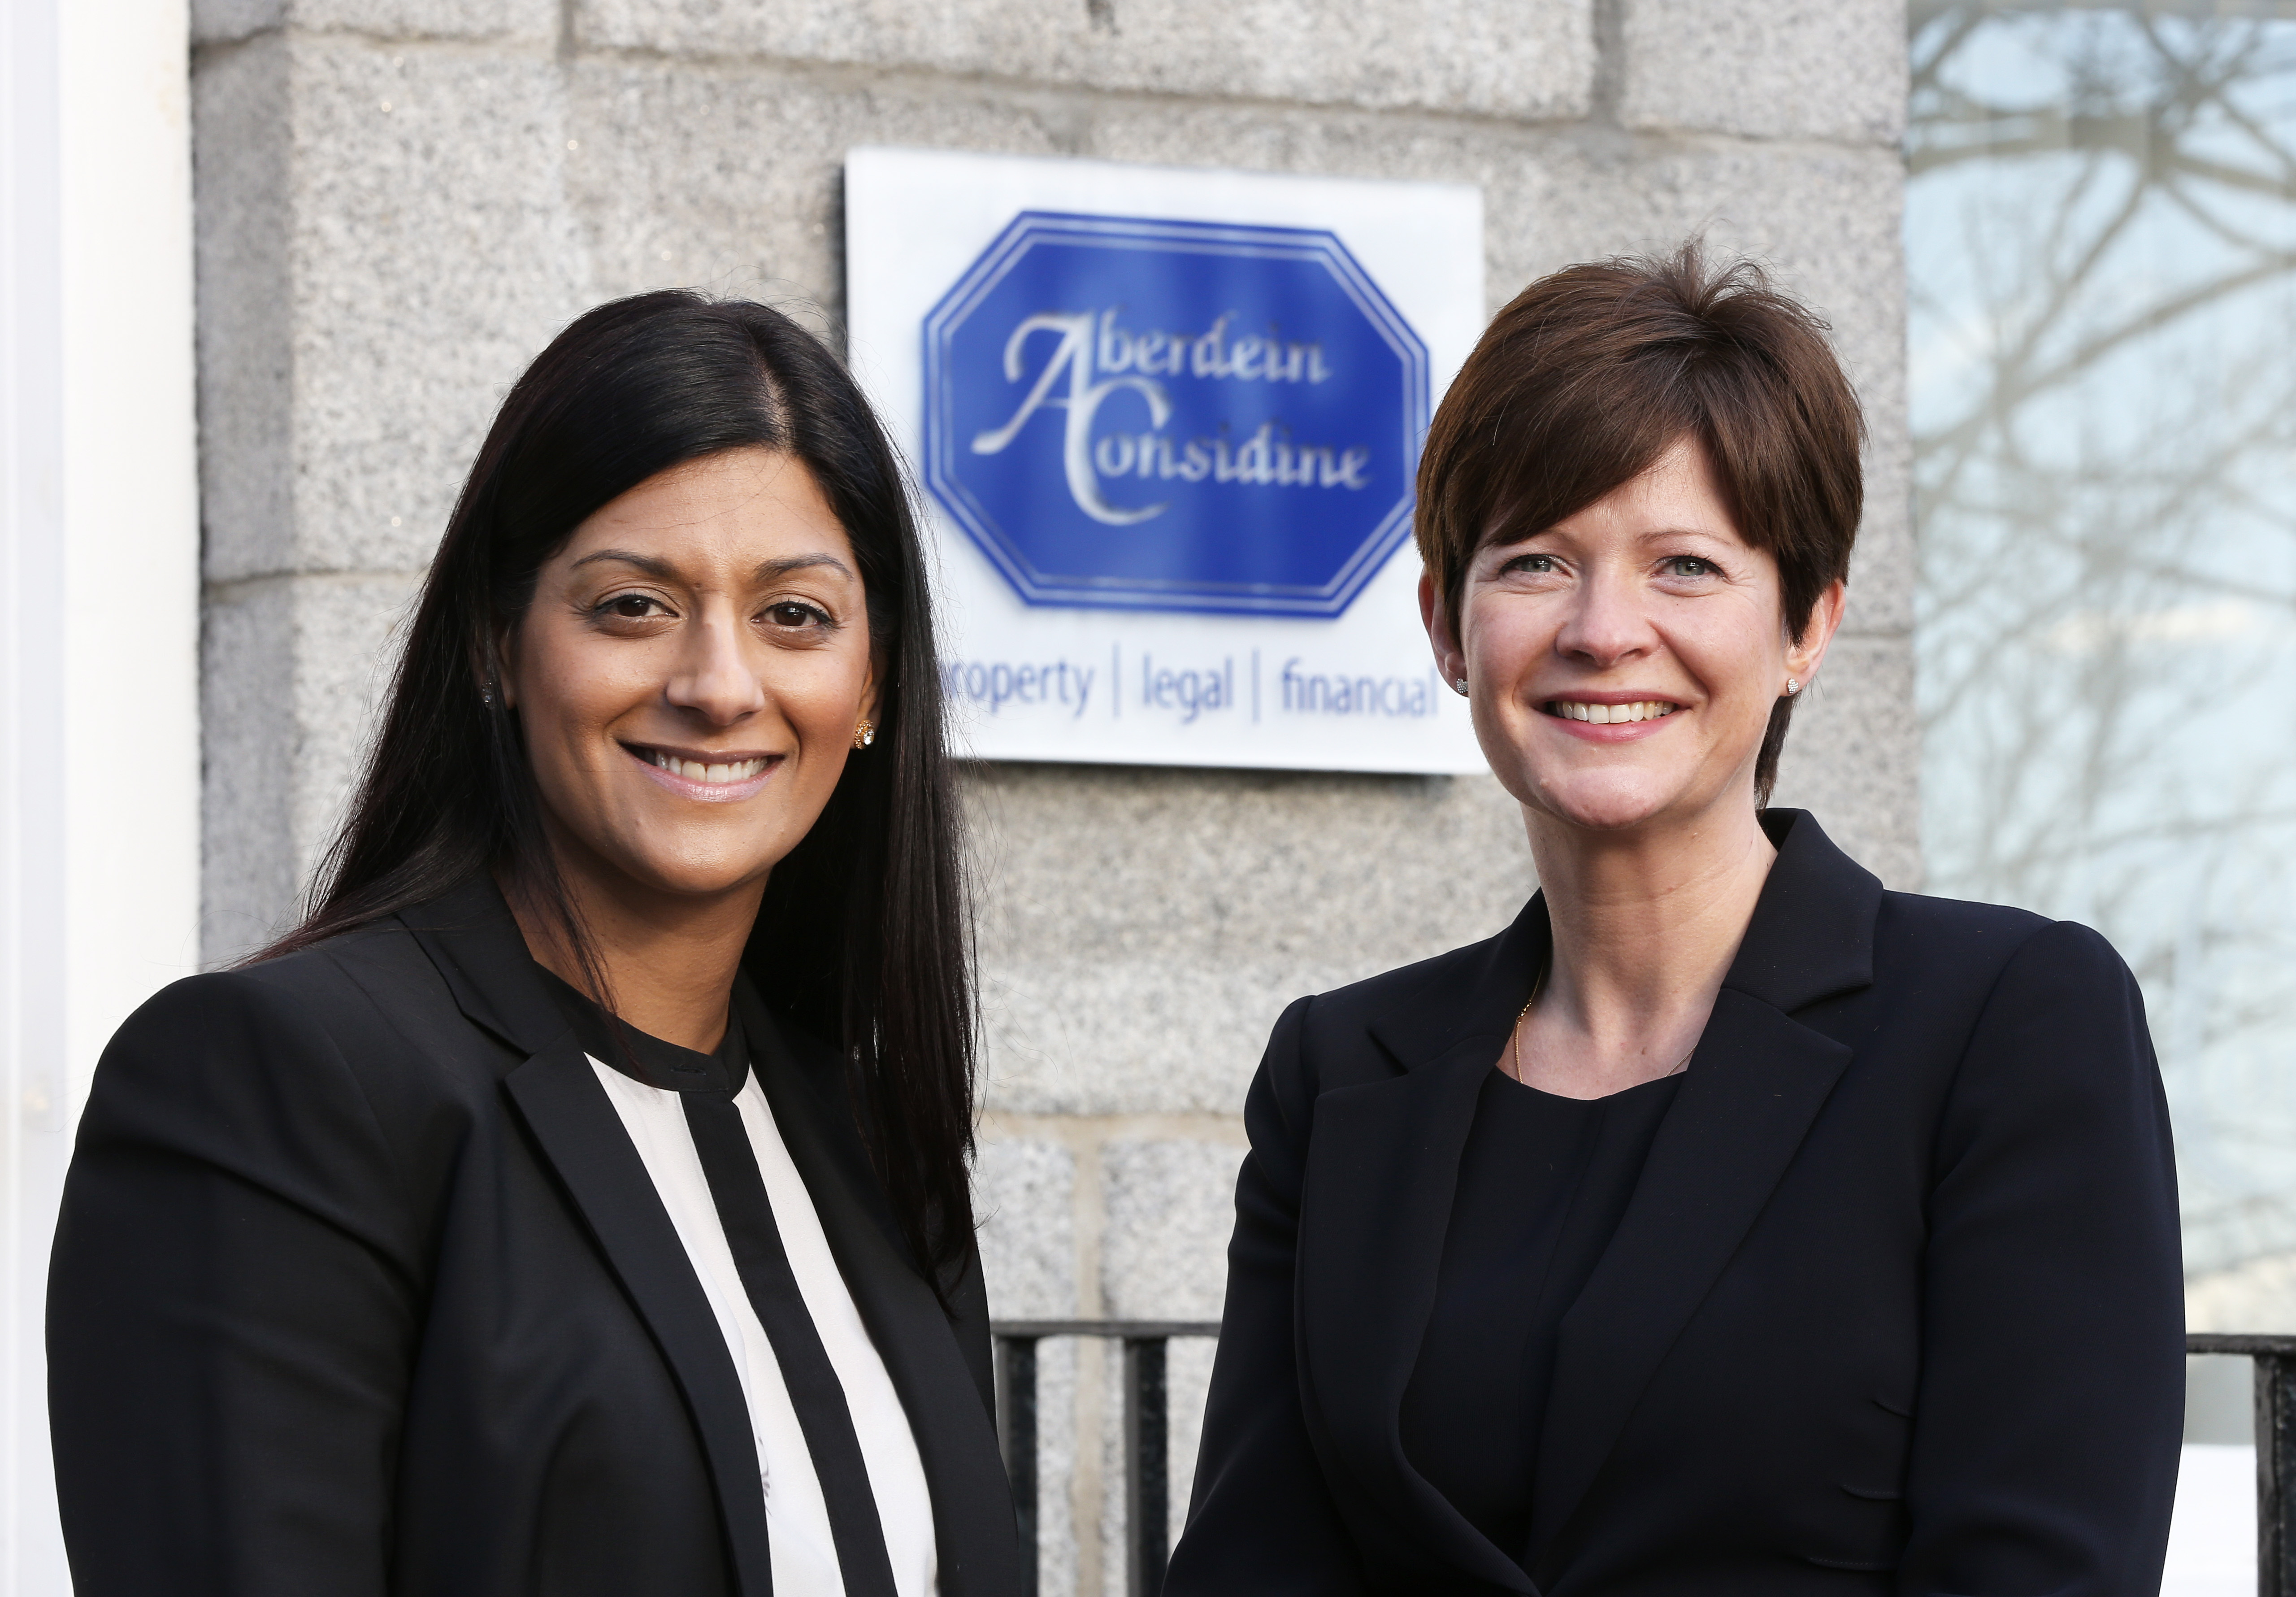 Press Release: Aberdein Considine family law partner recognised with specialist accreditation